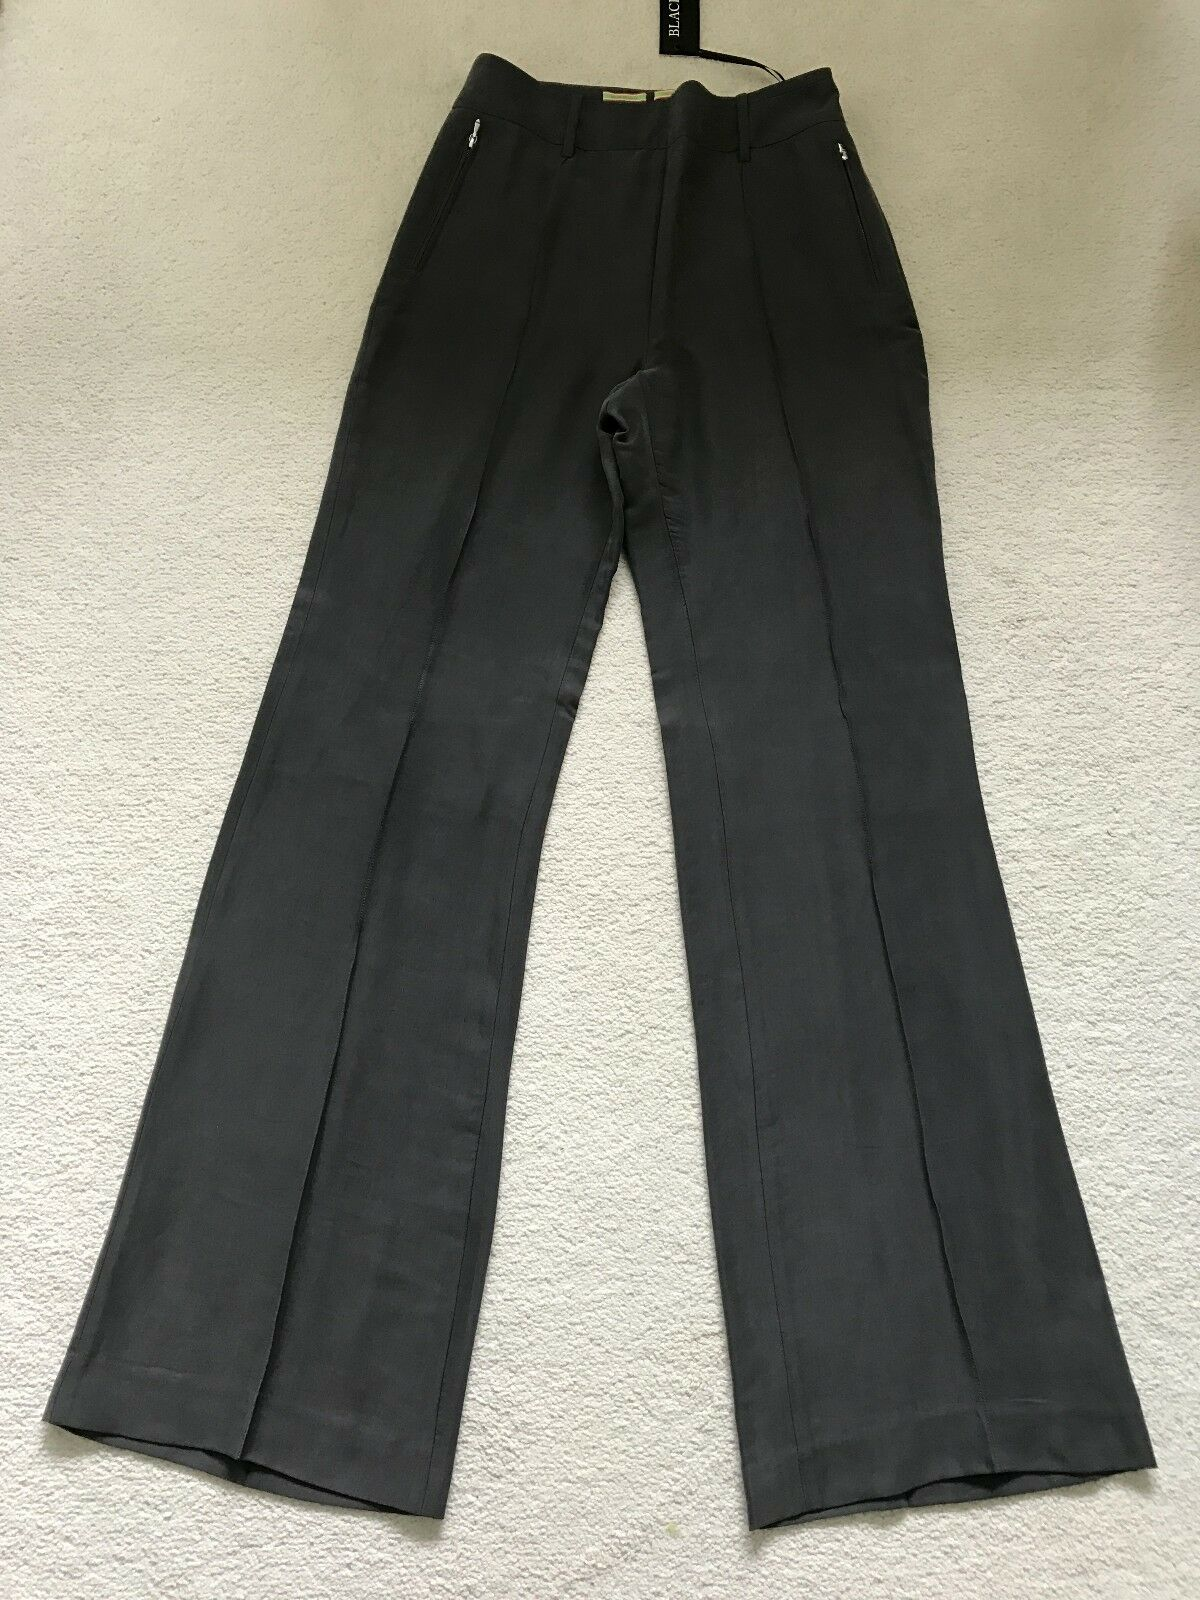 Paul Smith Ladies Dark Grey Woven Trousers - Size 42 - Made in